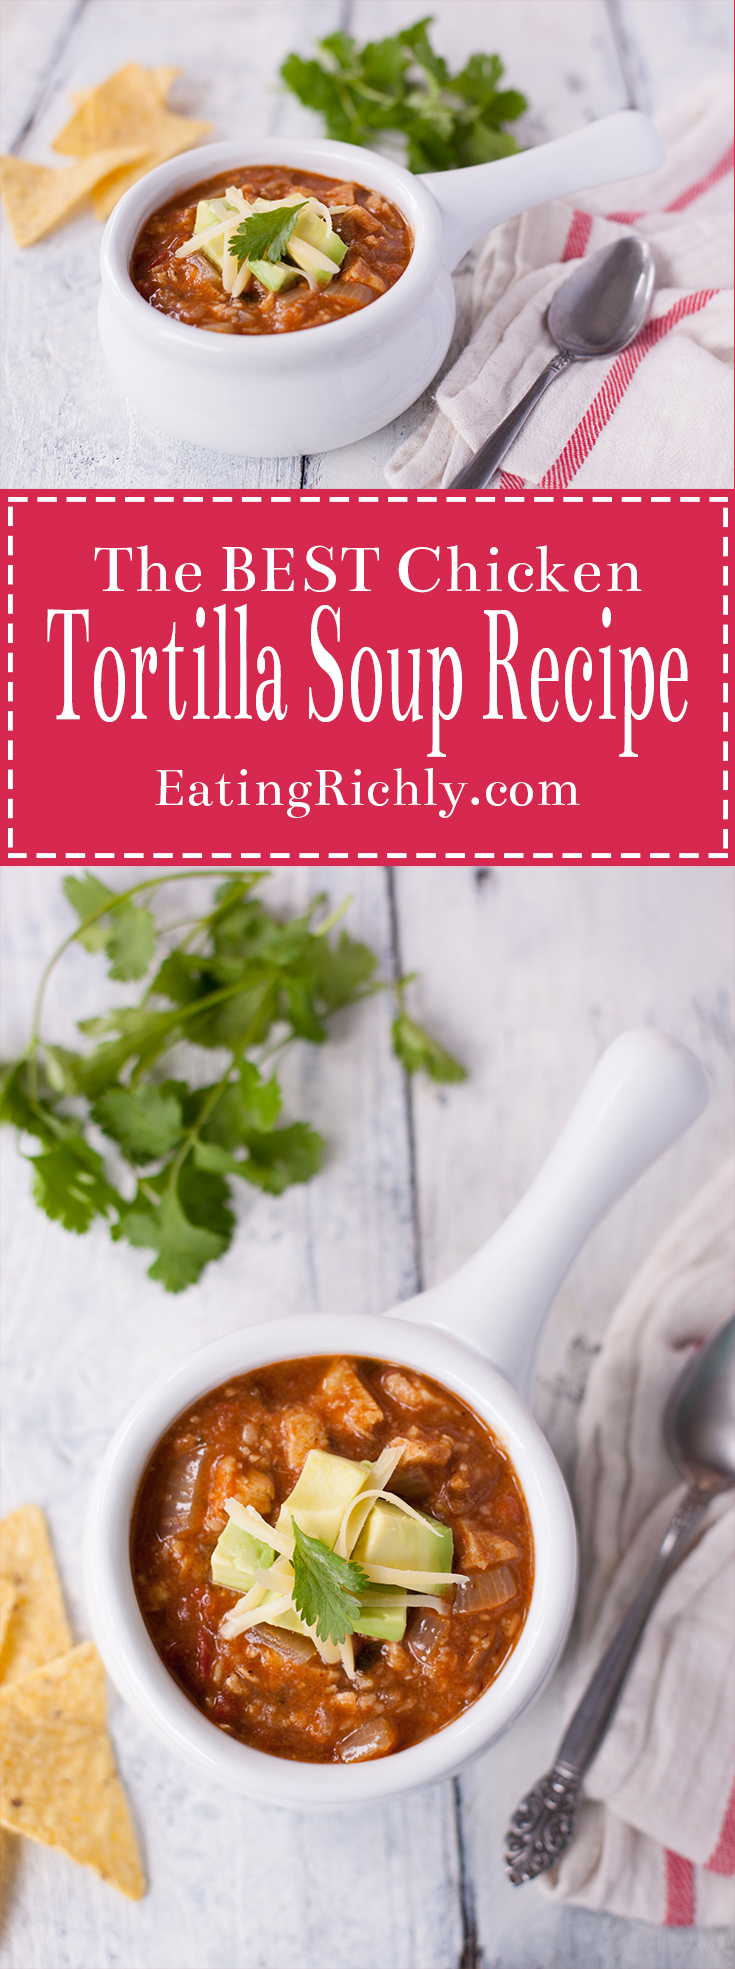 This easy chicken tortilla soup recipe is true comfort food. Ready in under 1 hour, & you control the amount of heat. You'll make this soup again and again! From EatingRichly.com